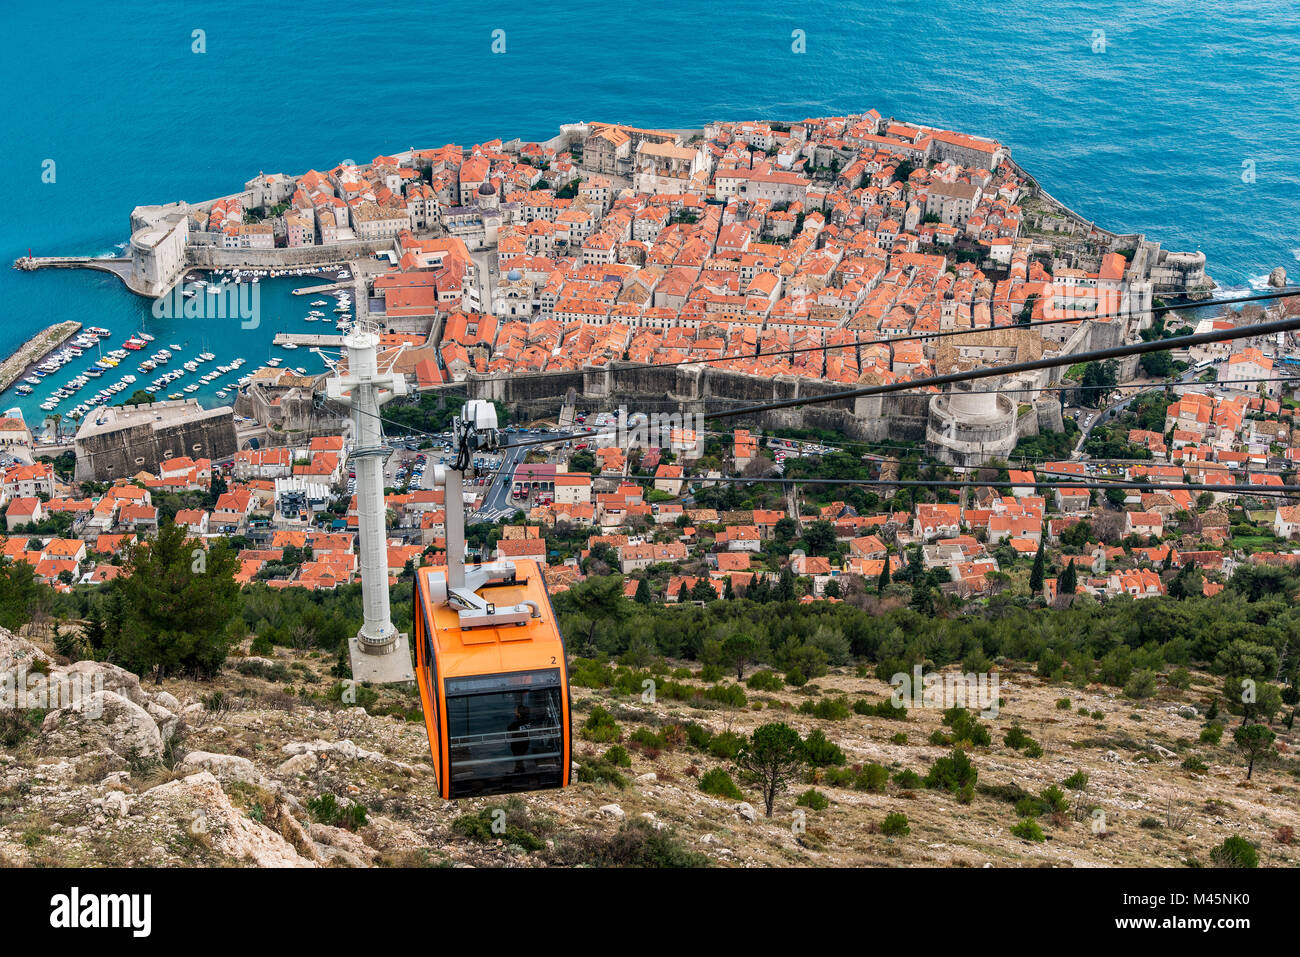 Aerial view of the old town with cable car, Dubrovnik, Croatia - Stock Image